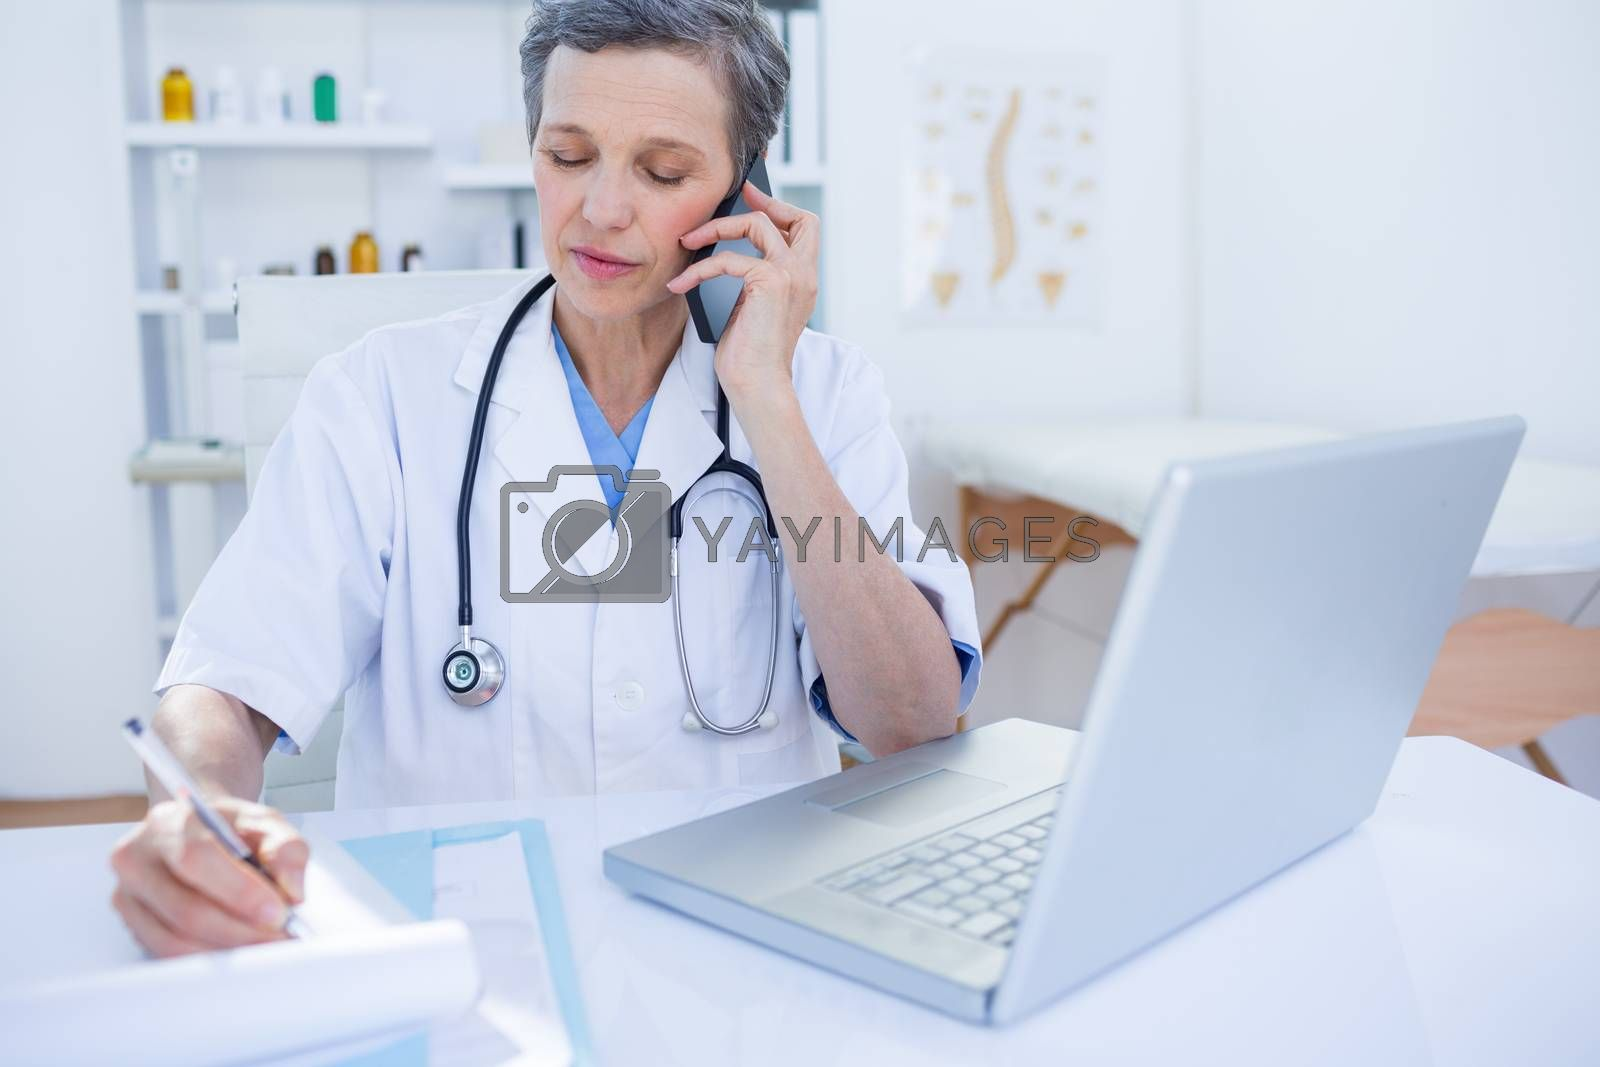 Royalty free image of Female doctor having a phone call by Wavebreakmedia